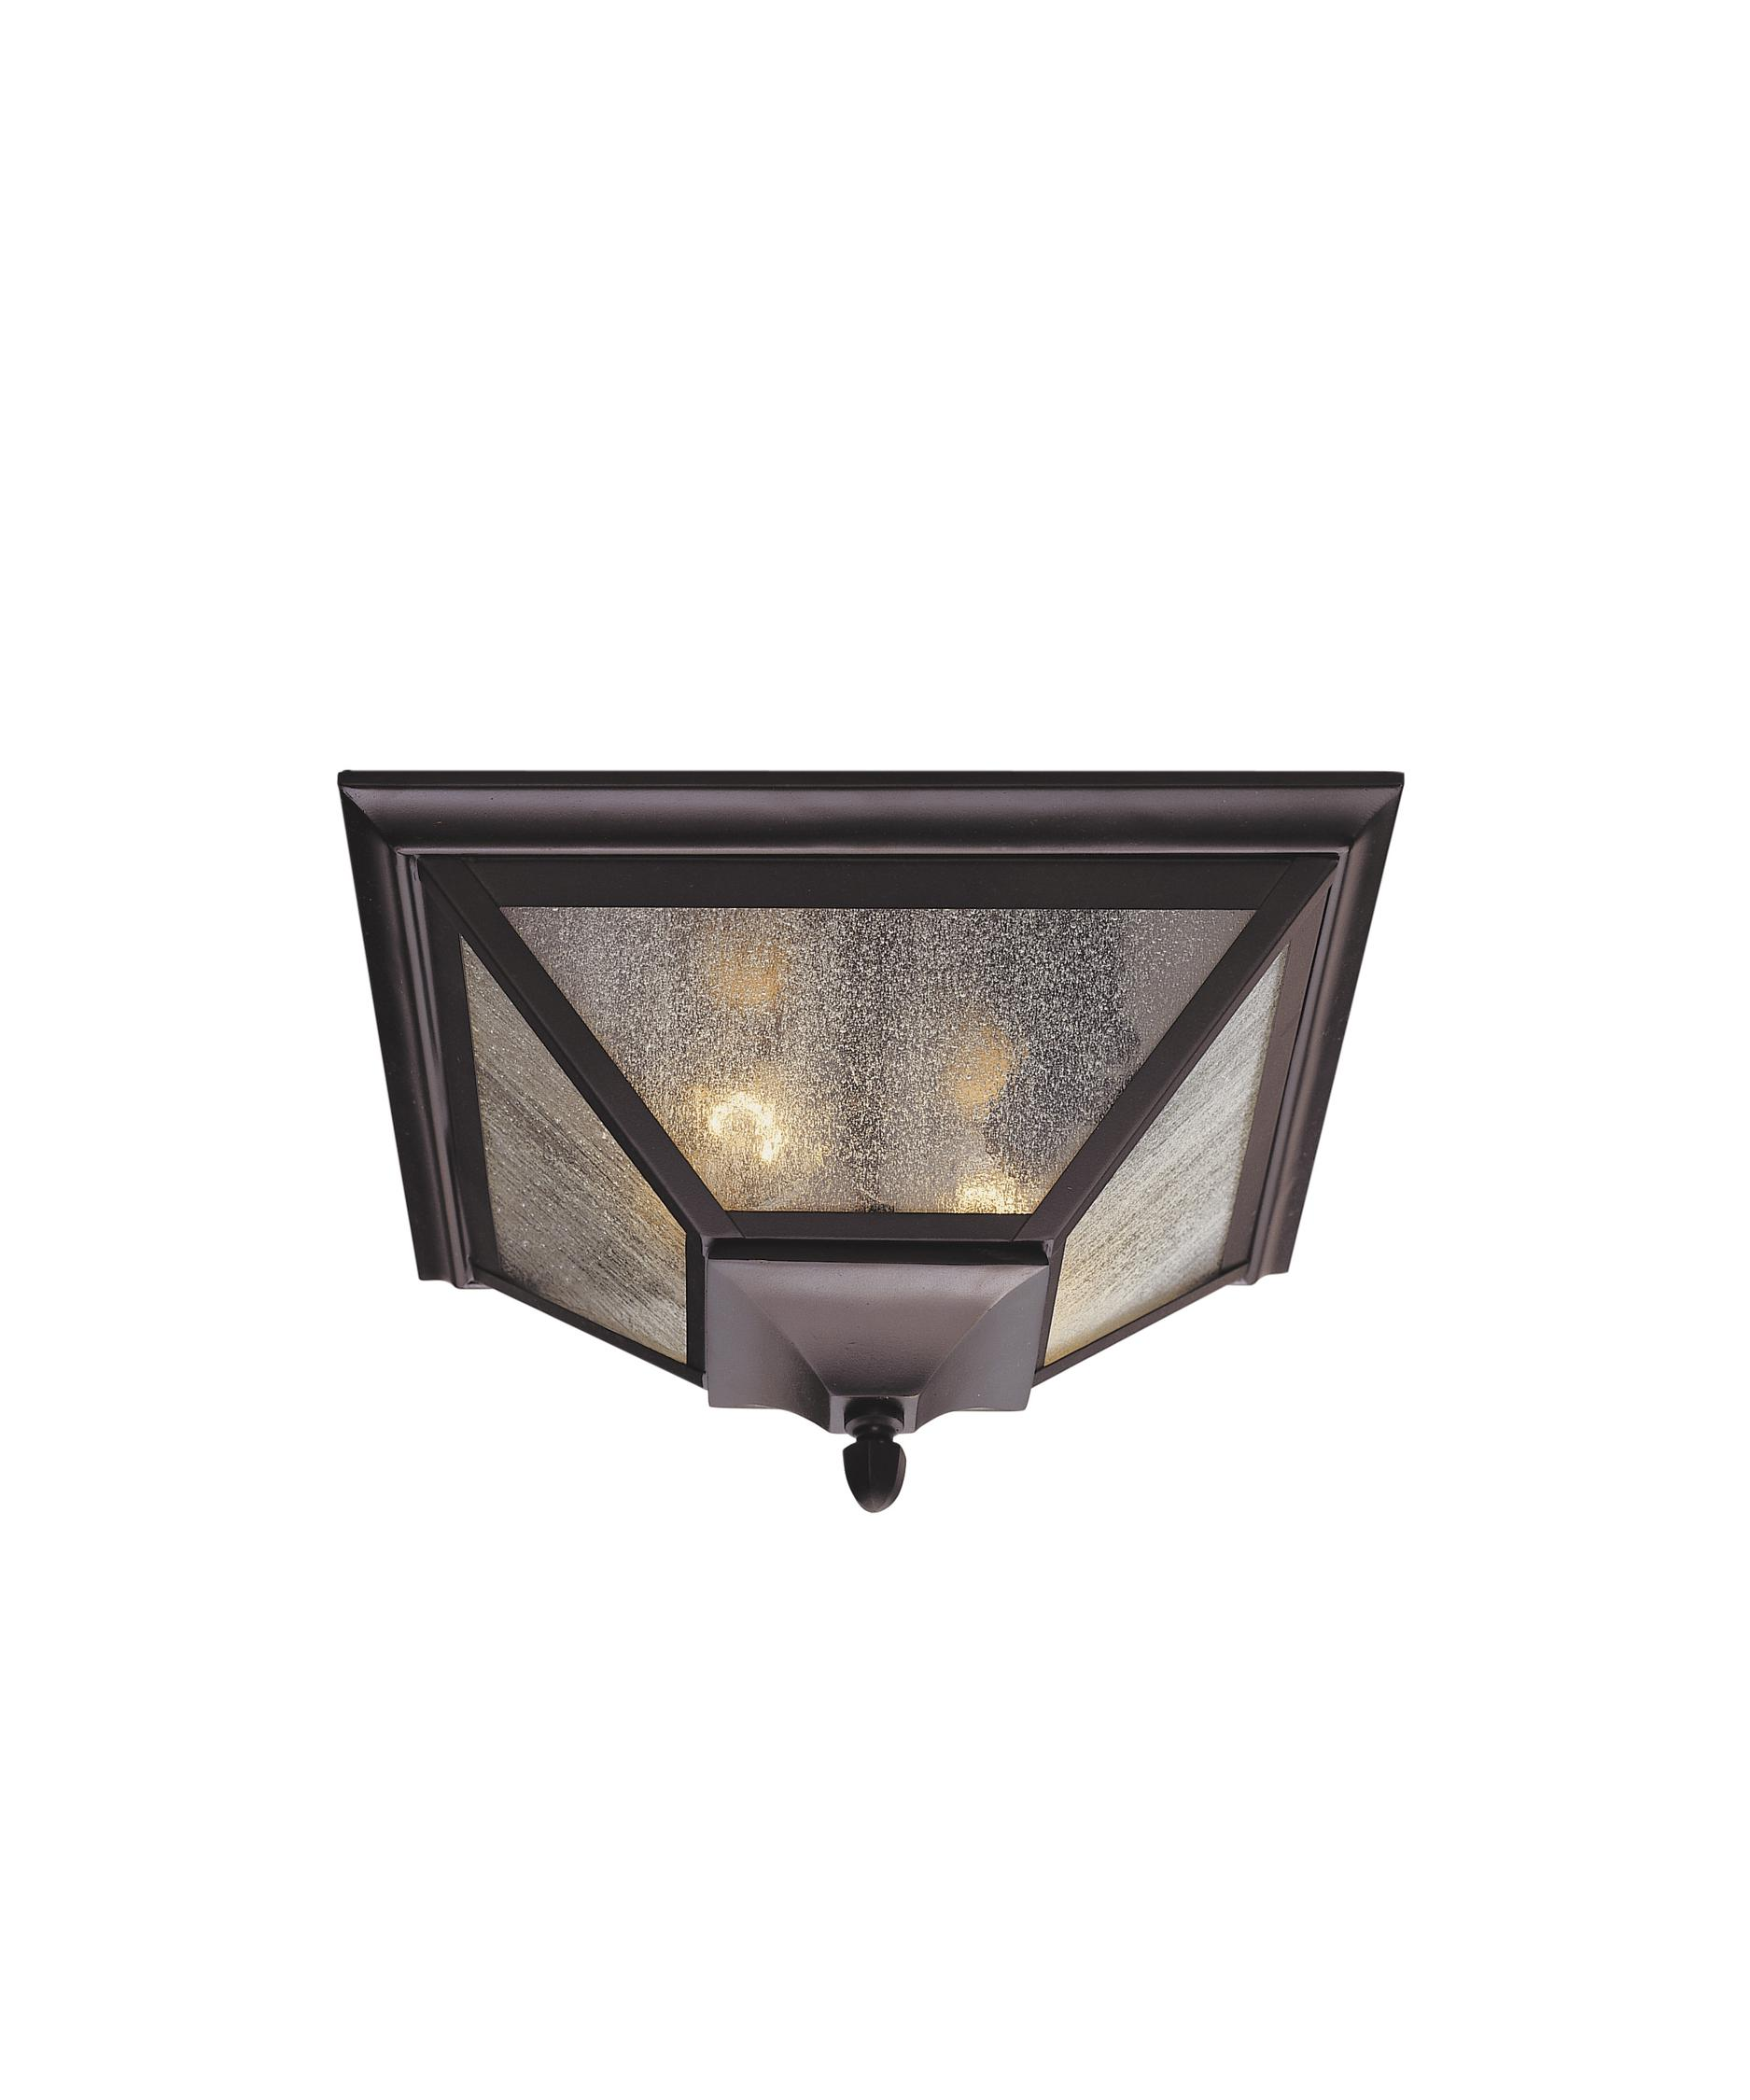 Flush mount outdoor lighting - Shown In Oil Rubbed Bronze Finish And Seeded Glass